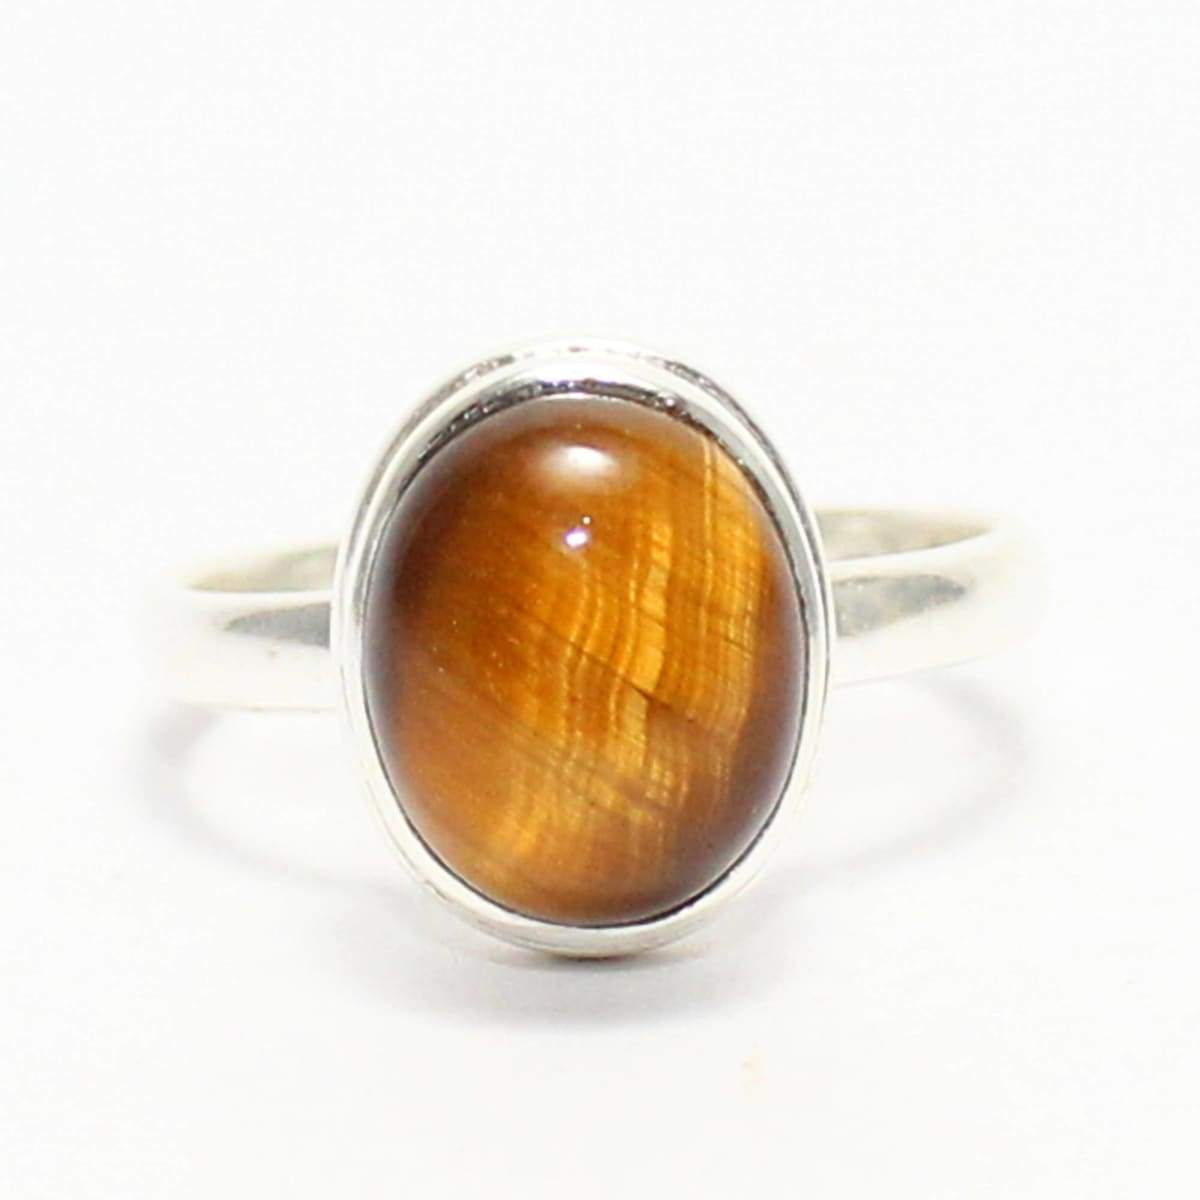 Rings Gorgeous NATURAL TIGER EYE Gemstone Ring Birthstone 925 Sterling Silver Fashion Handmade All Size Gift - by Jewelry Zone